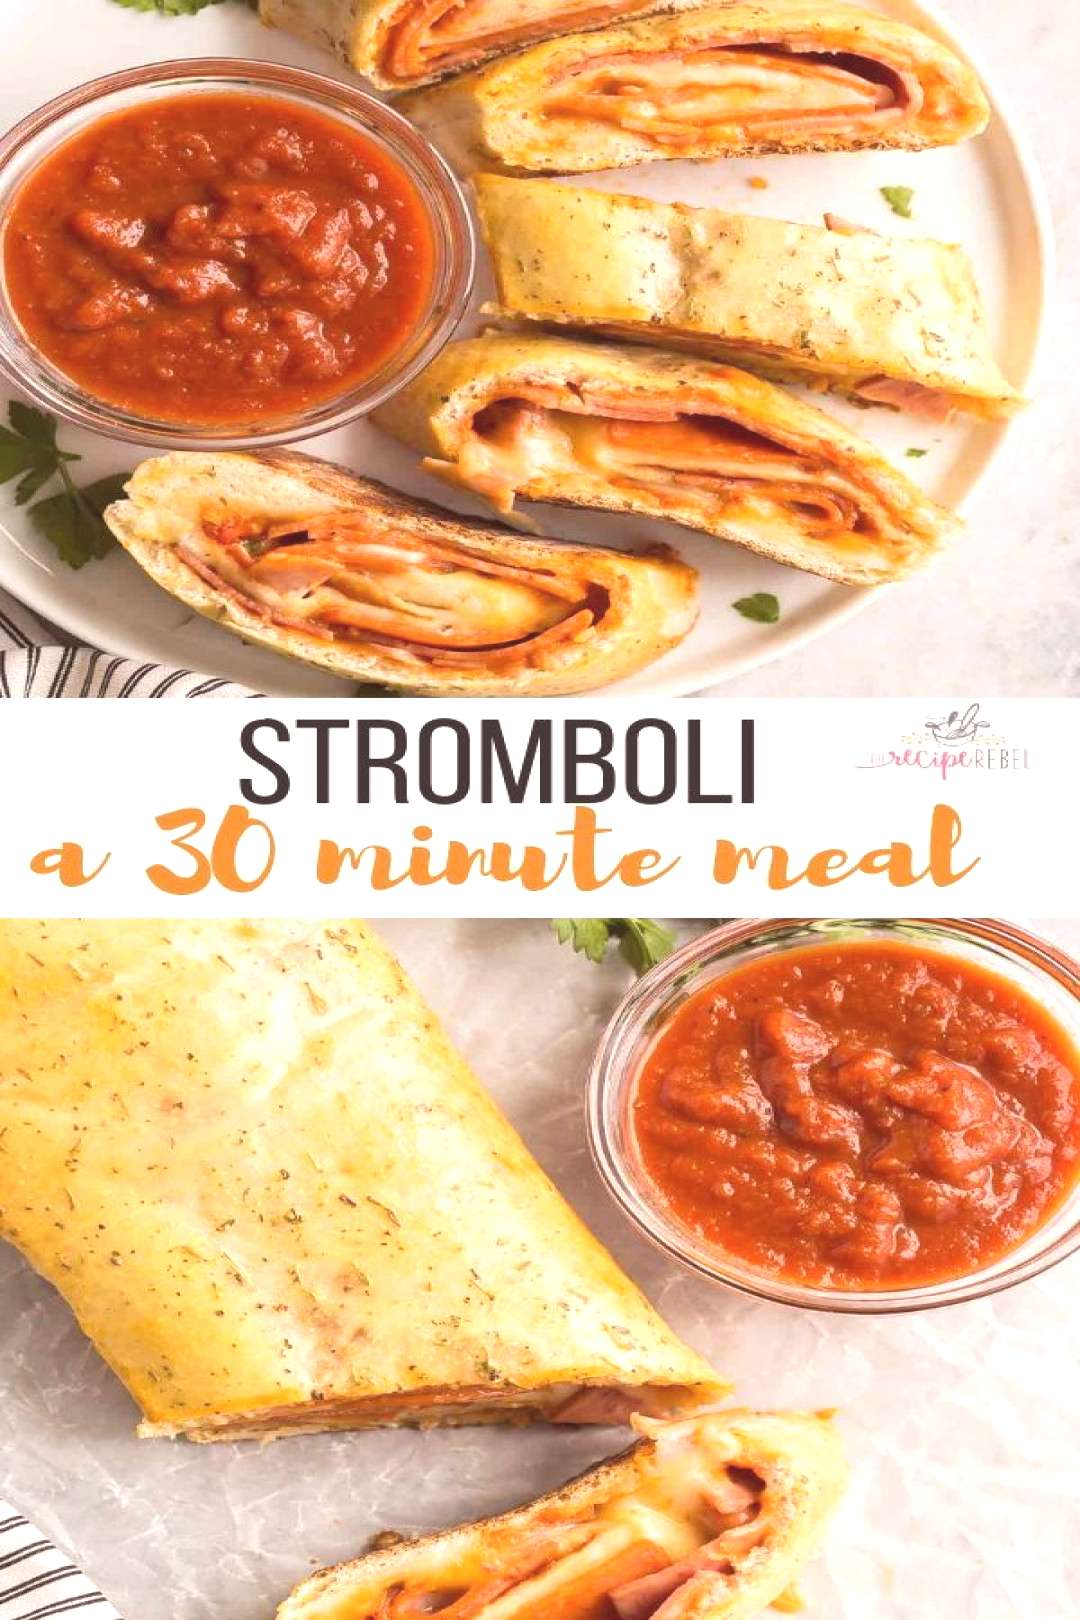 This easy Stromboli recipe is a 30 minute meal that the family will go crazy for! Just a few simple